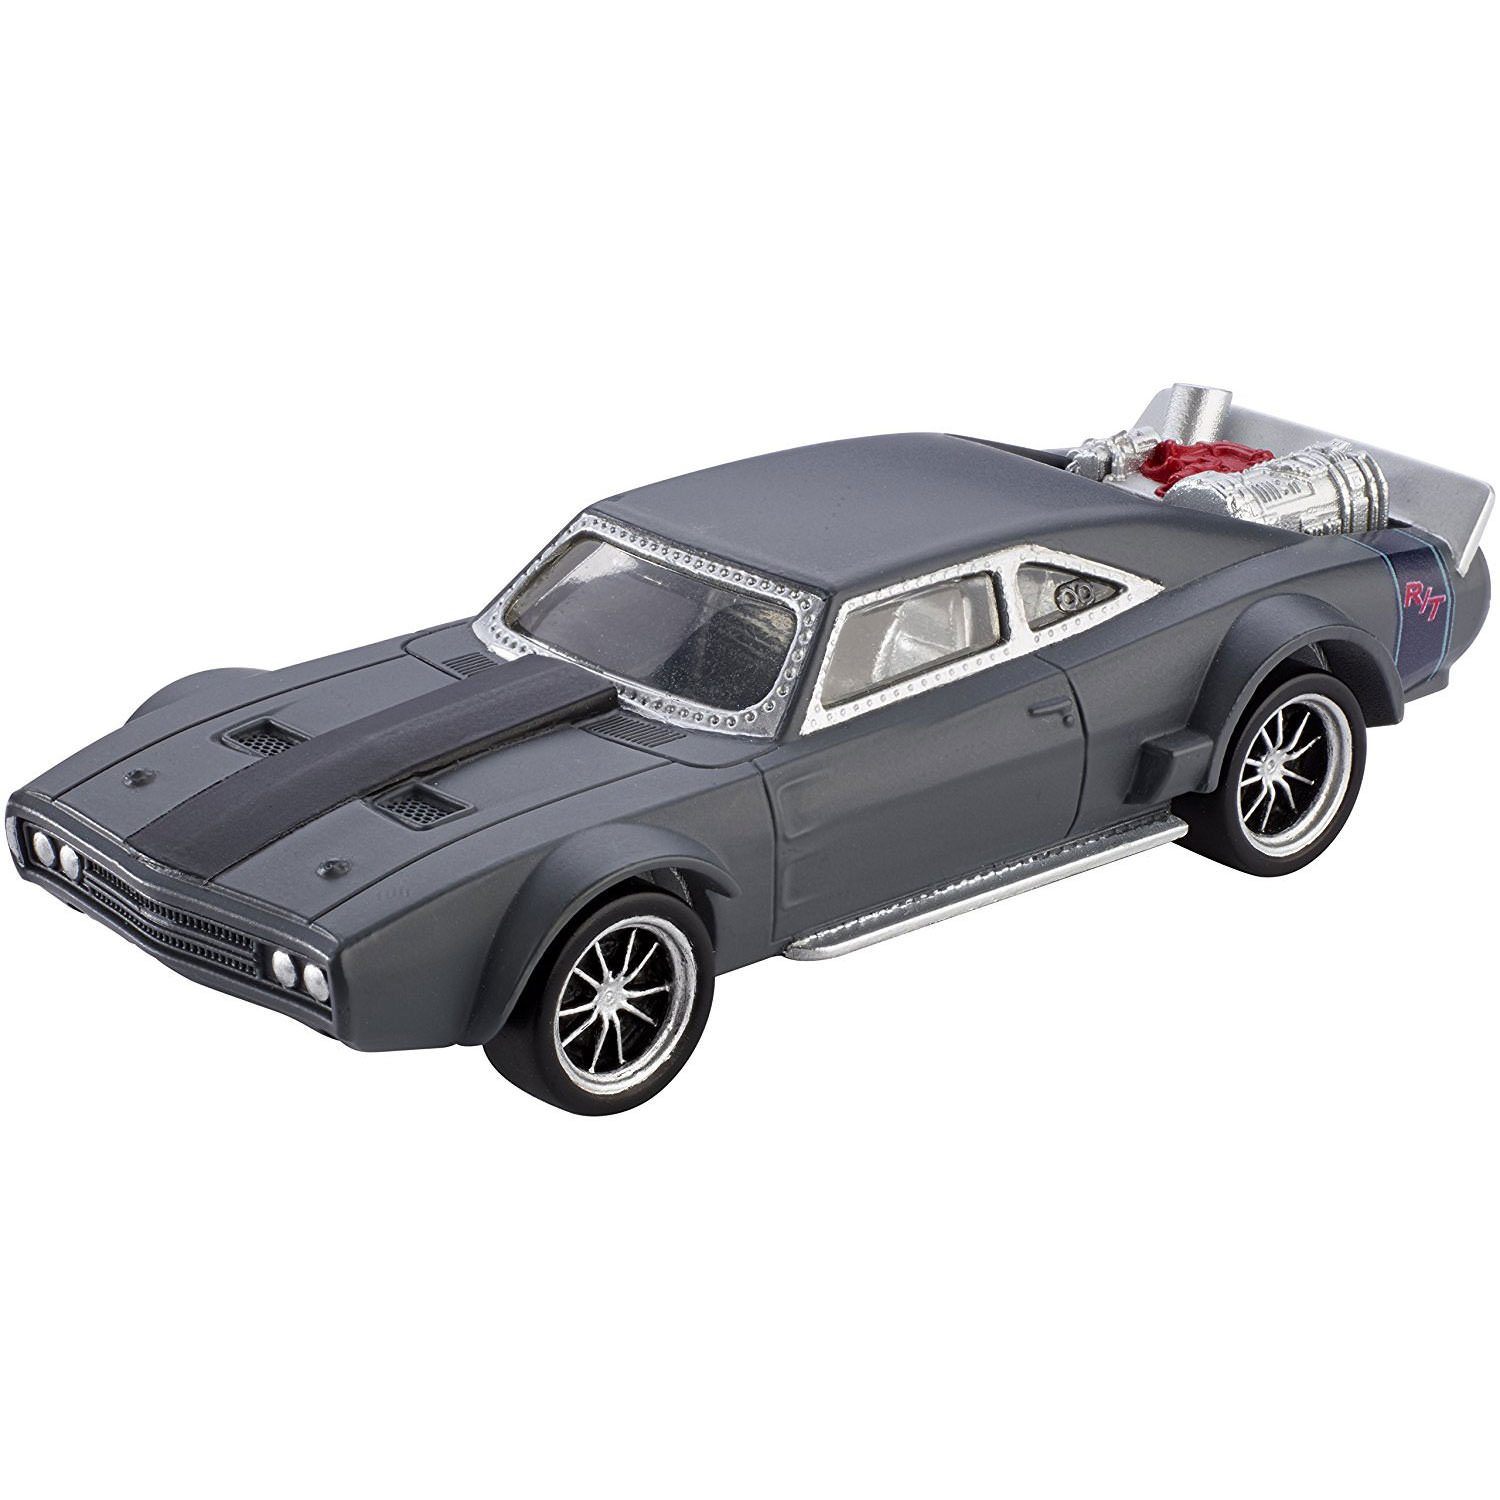 Hot Wheels Fast Amp Furious 1 55 Ice Charger At Hobby Warehouse